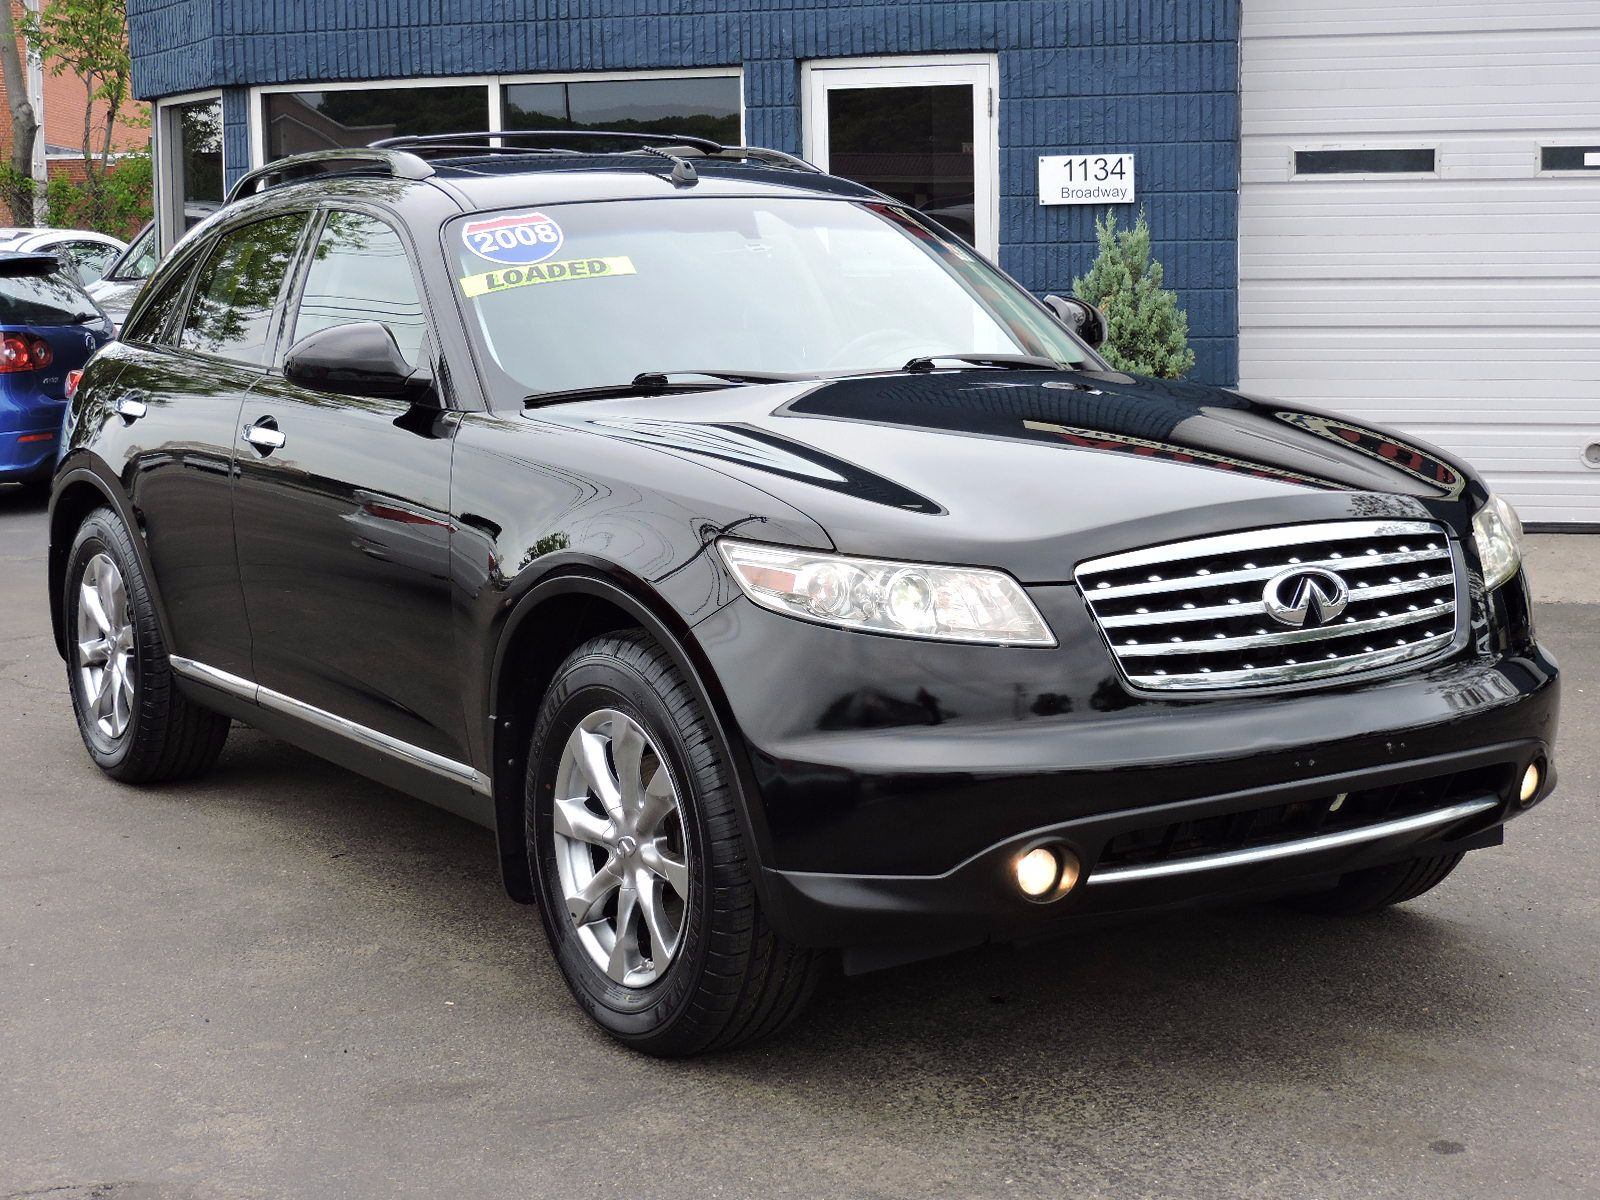 2008 Infiniti FX35 - All Wheel Drive - Navigation